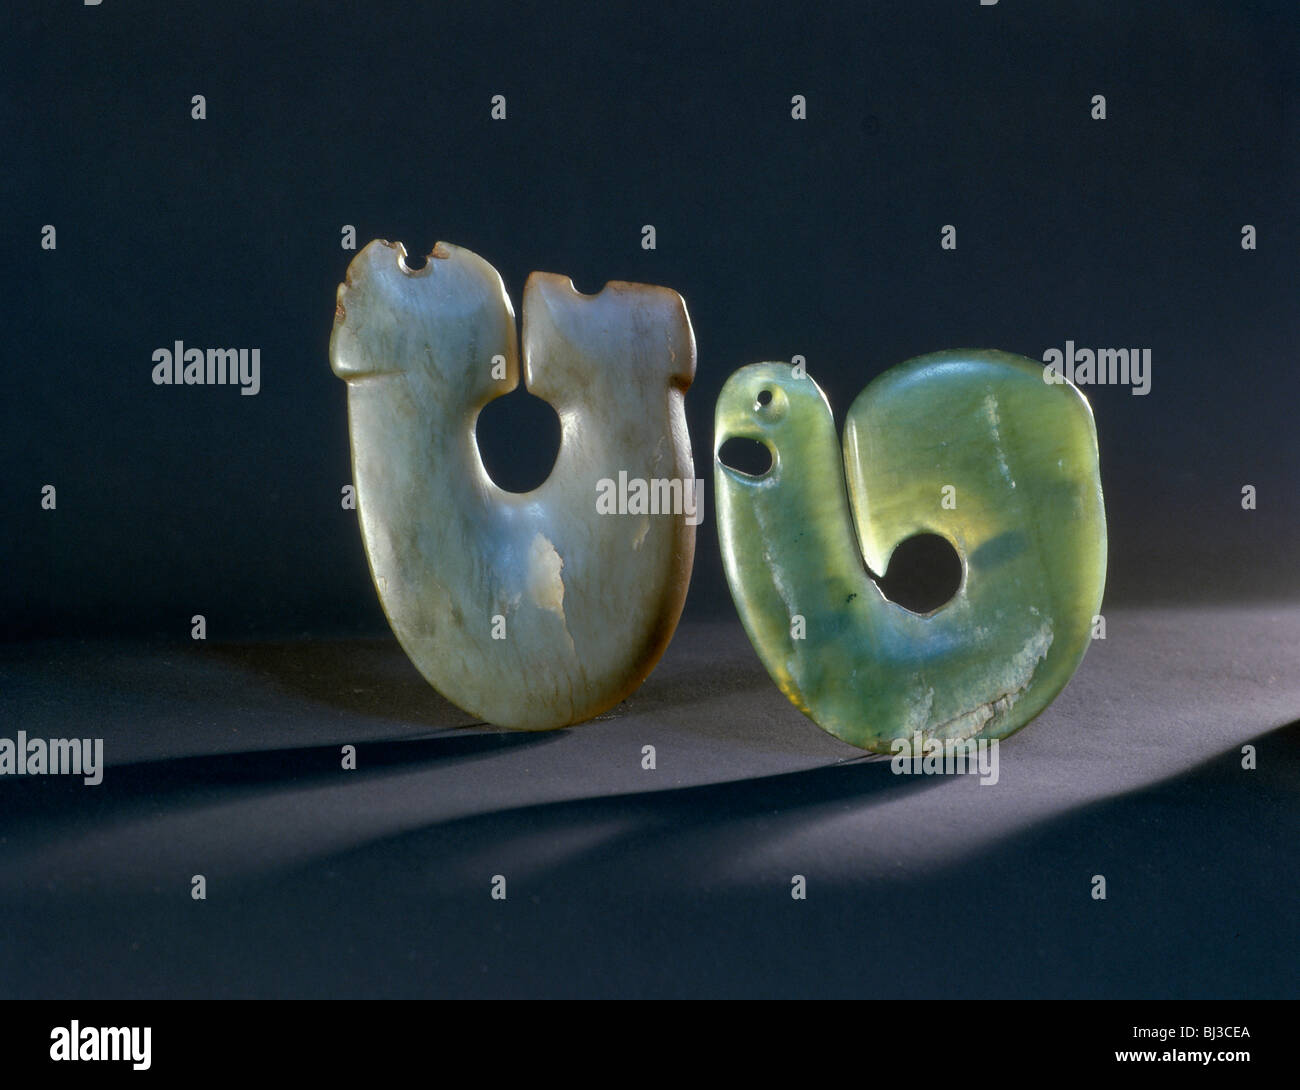 Green jade maori hei matau fish hook pendants new zealand artist green jade maori hei matau fish hook pendants new zealand artist werner forman mozeypictures